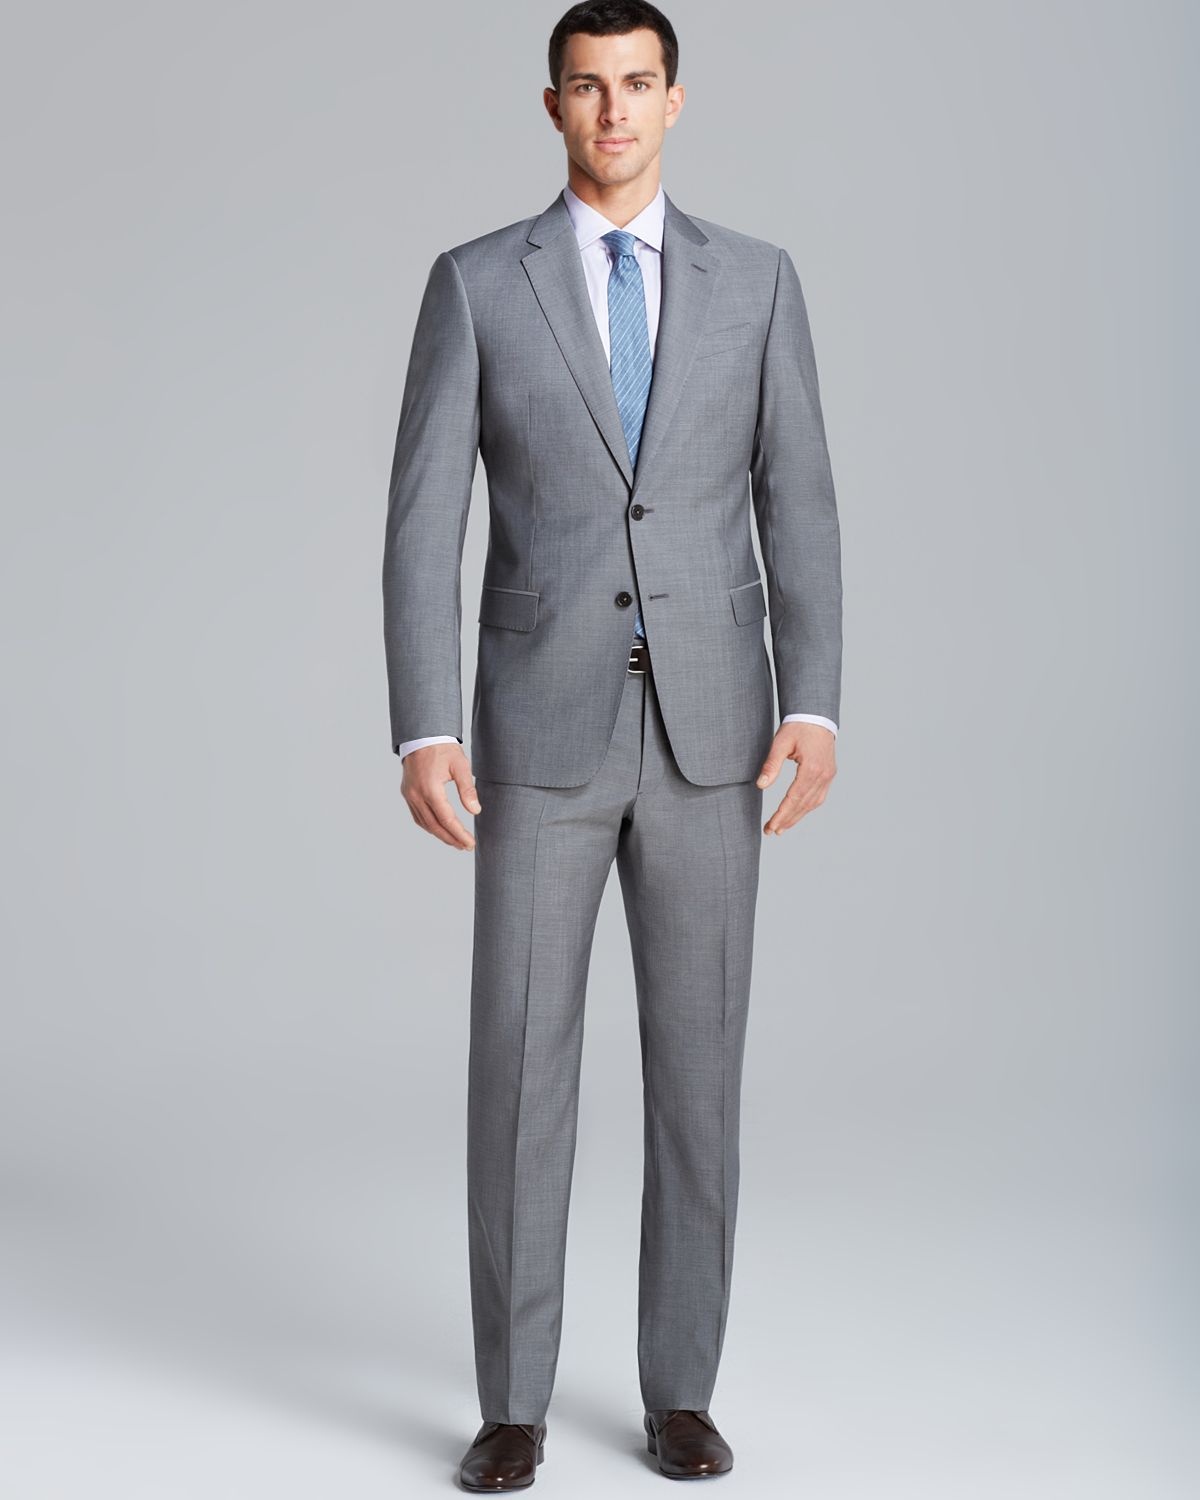 Armani Giorgio End On End Suit - Regular Fit in Gray for ... Giorgio Armani Jacket